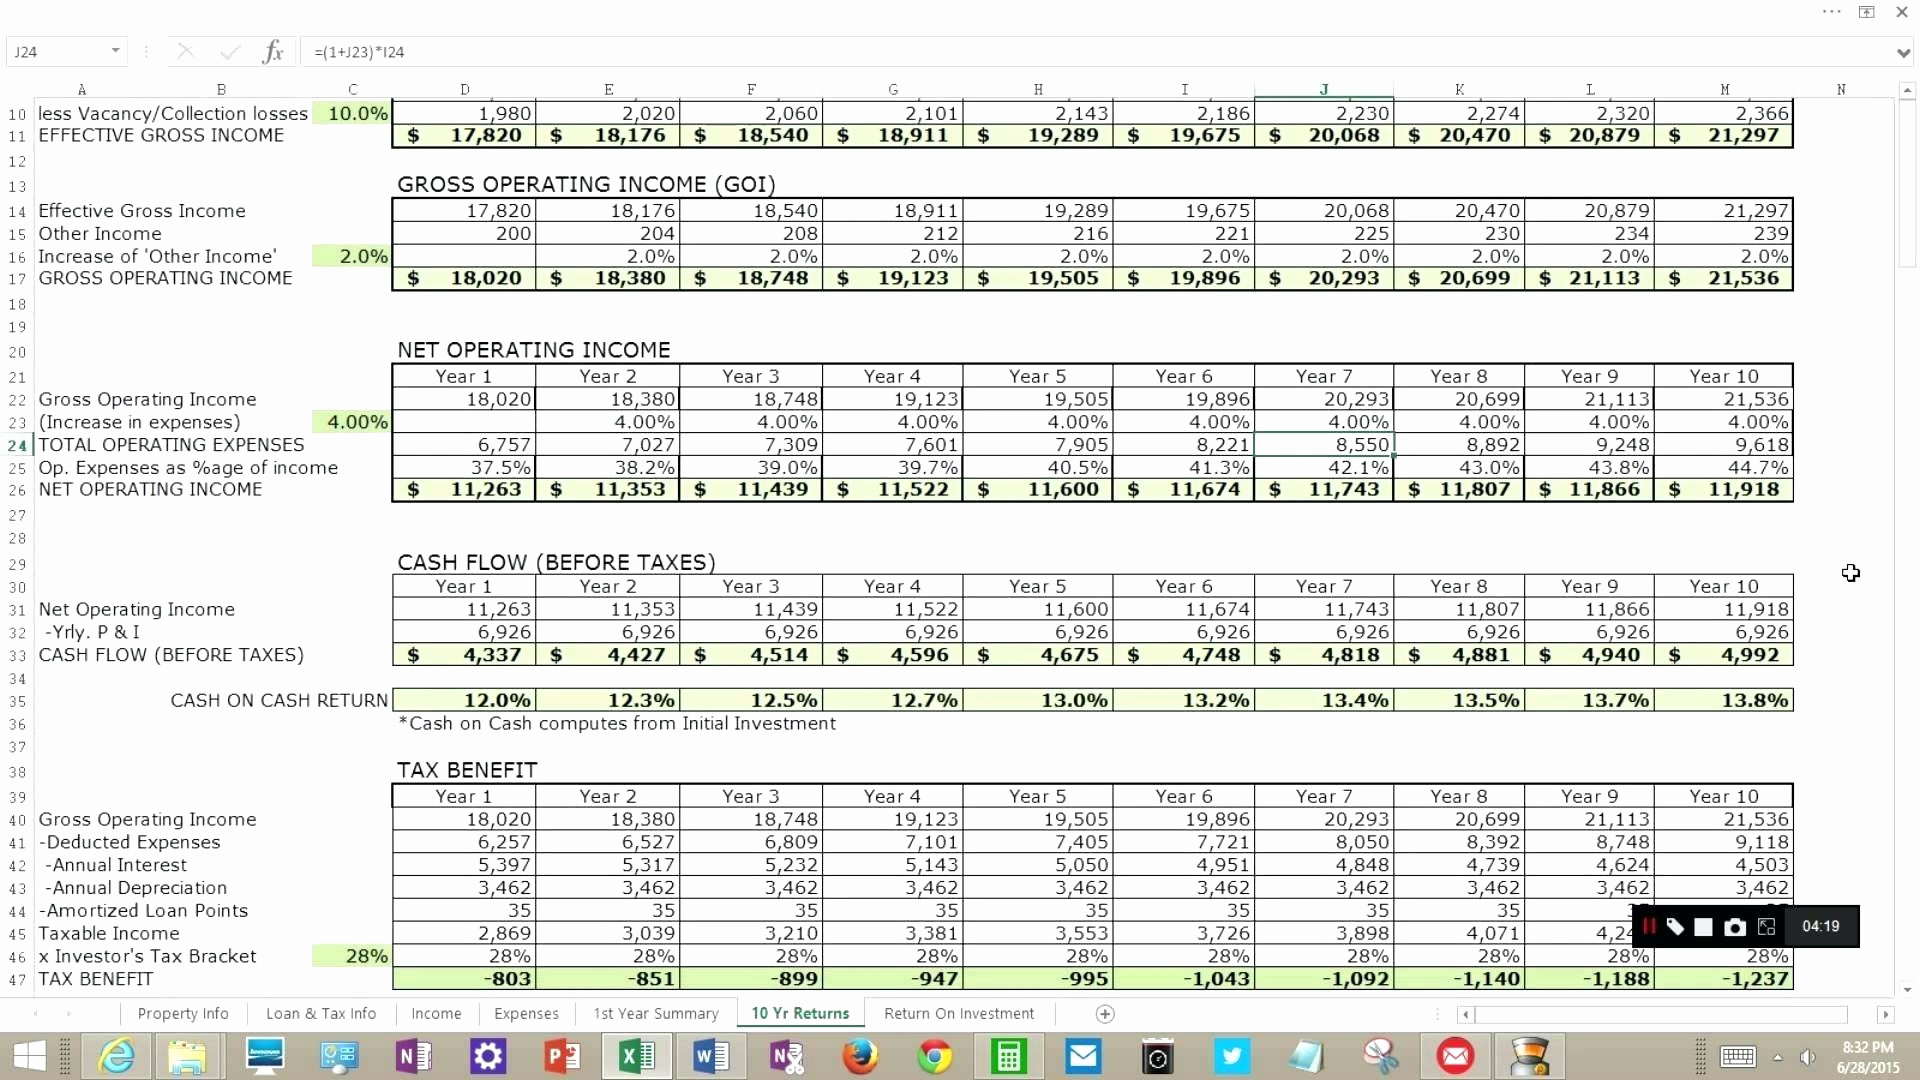 Excel Spreadsheet For Real Estate Investment In Real Estate Investment Analysis Excel Spreadsheet – Spreadsheet